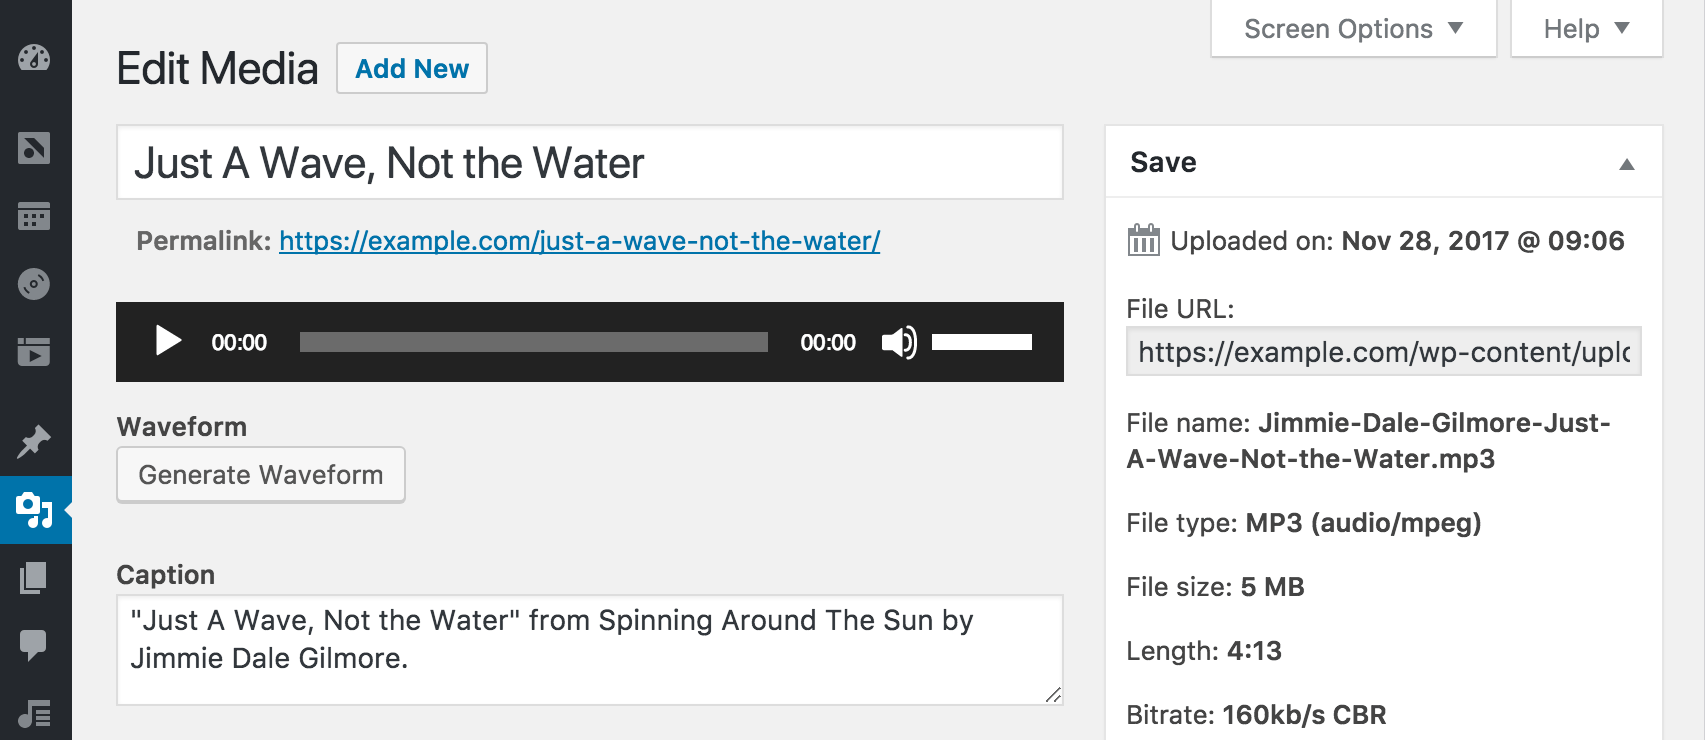 Screenshot showing a button to generate a waveform on the Edit Attachment screen in WordPress.